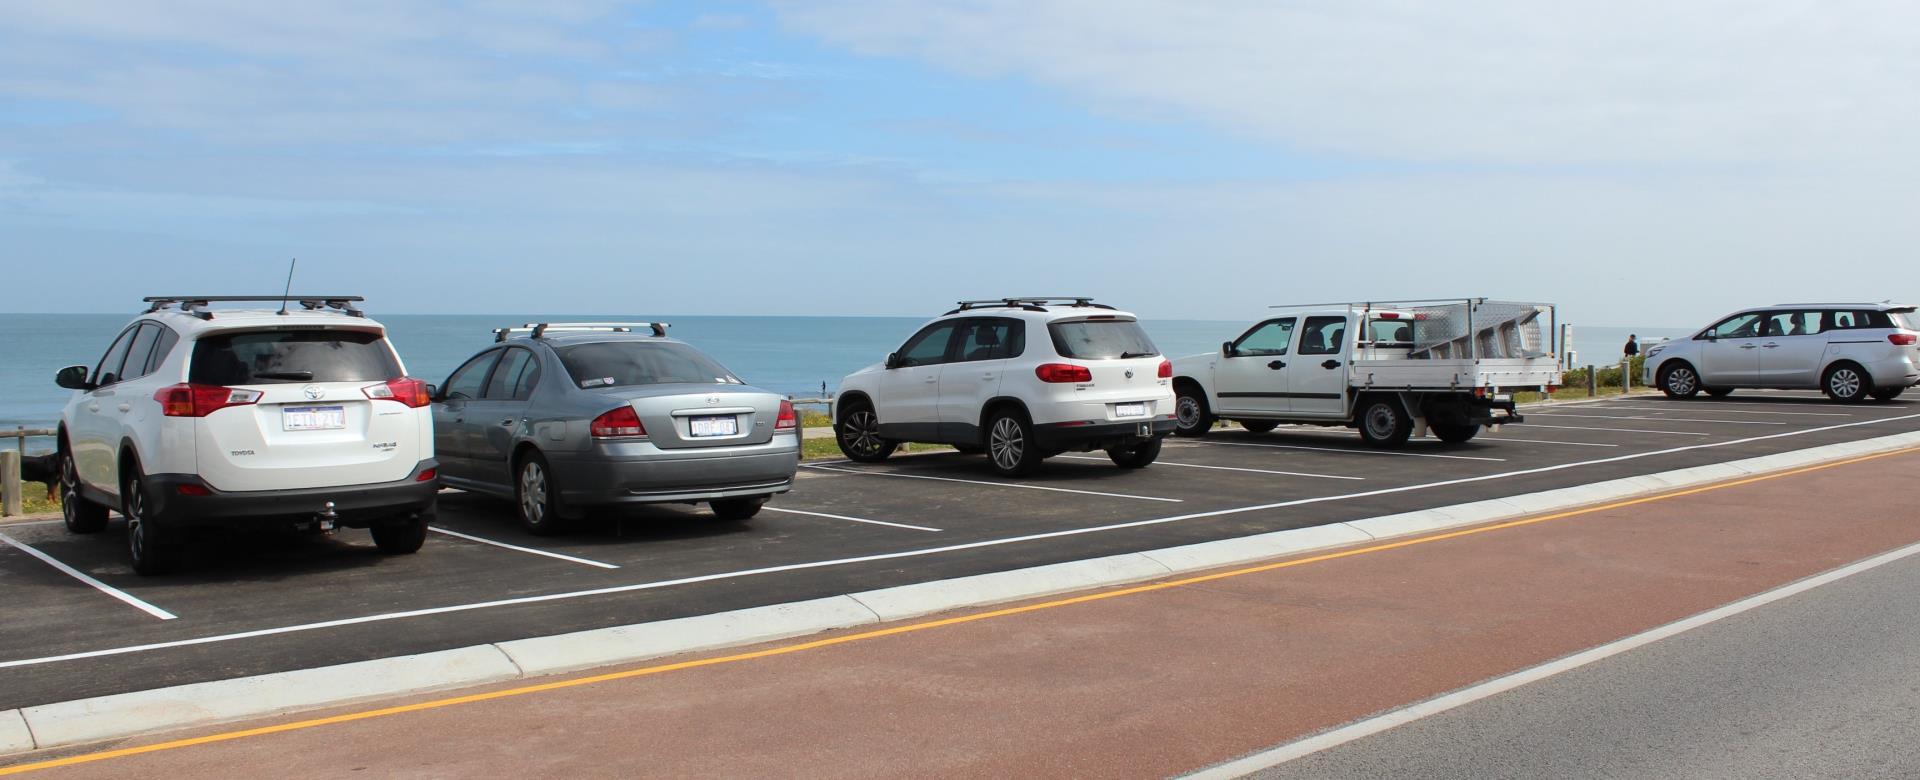 Carpark overlooking Cottesloe Beach